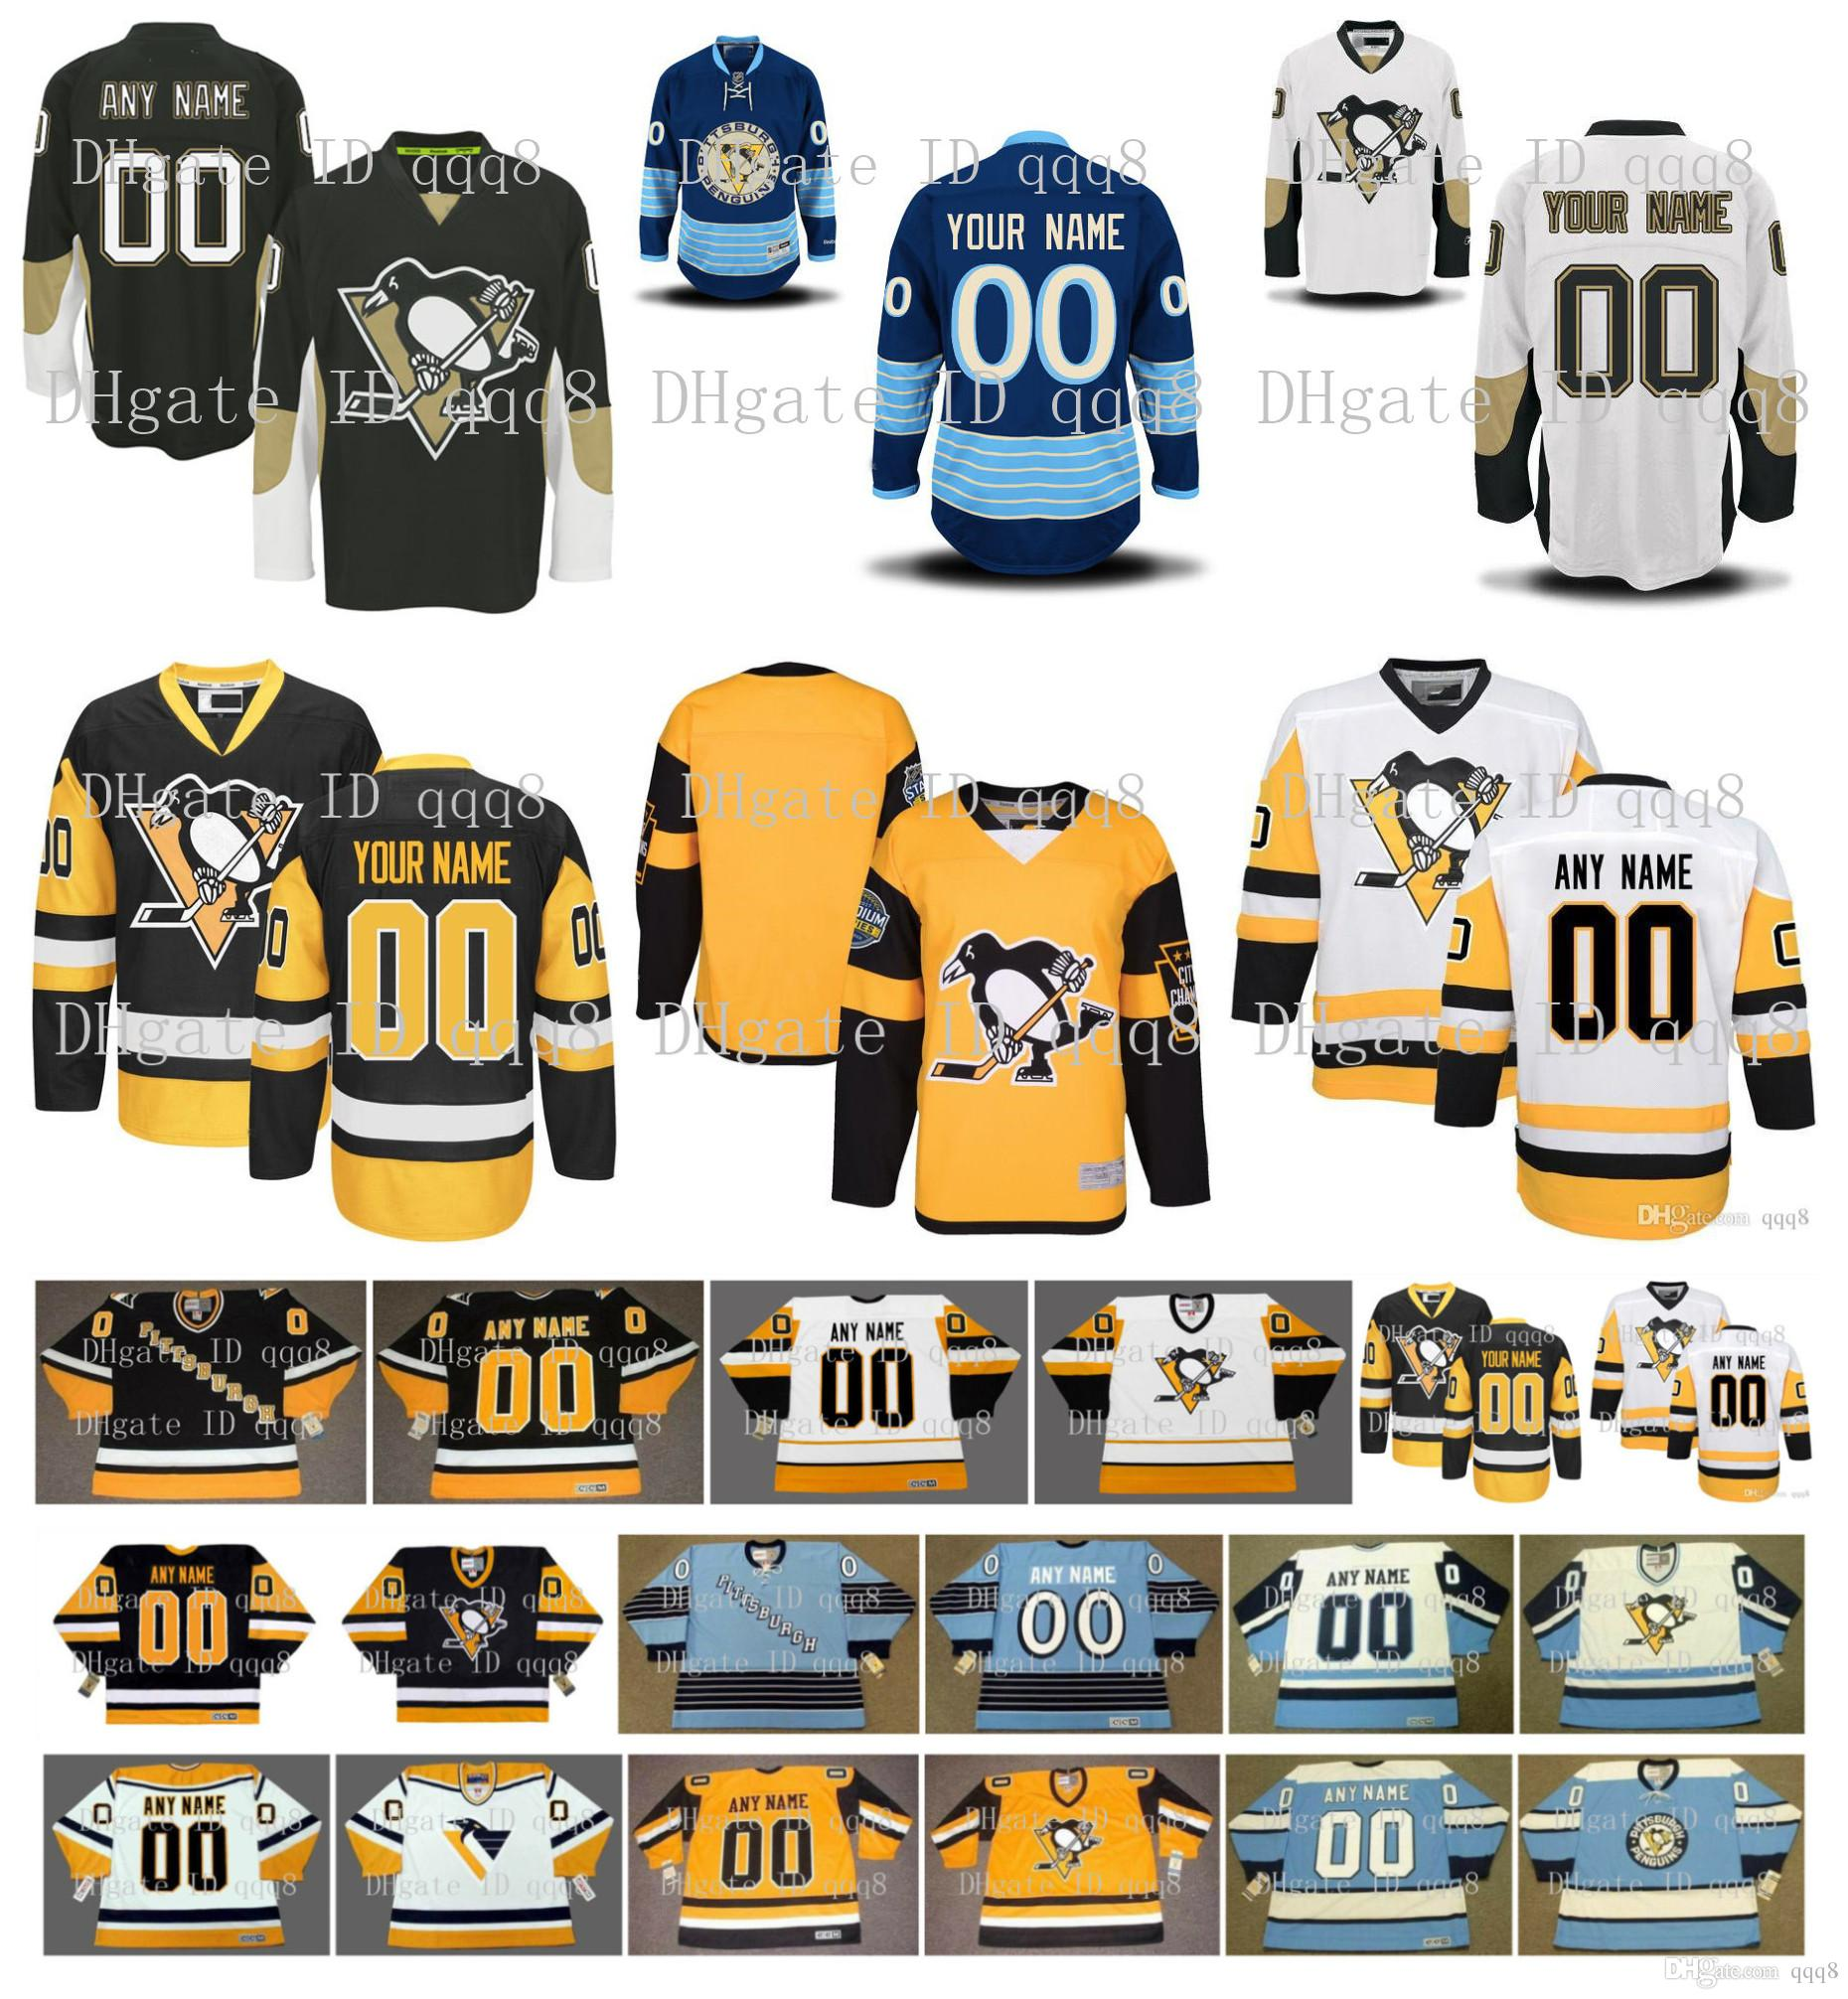 Customized Men Pittsburgh Penguins Jerseys Custom Stitched Any Name Any Number Vintage Ice Hockey Jersey Embroidery Logos Size S-XXXL